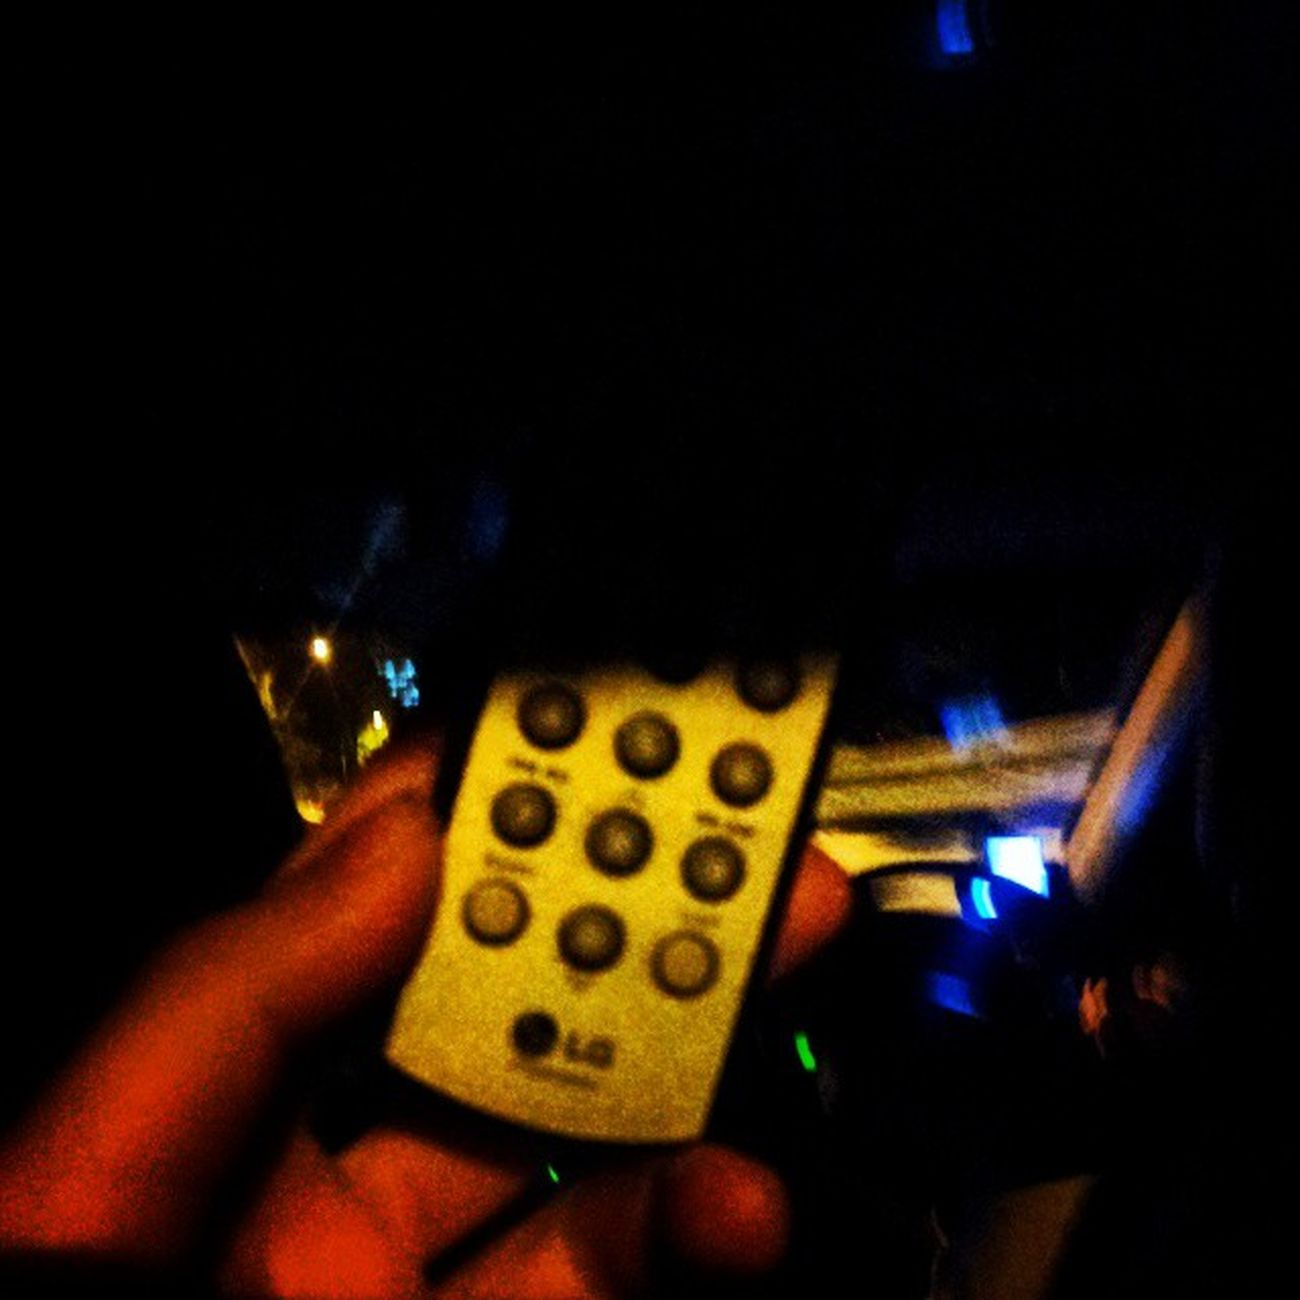 I asked for too much. Cabbie just hand me the remote to adjust my preferred fm and volume. @charissajht Cool uncle uh? Kiss92 Taxi